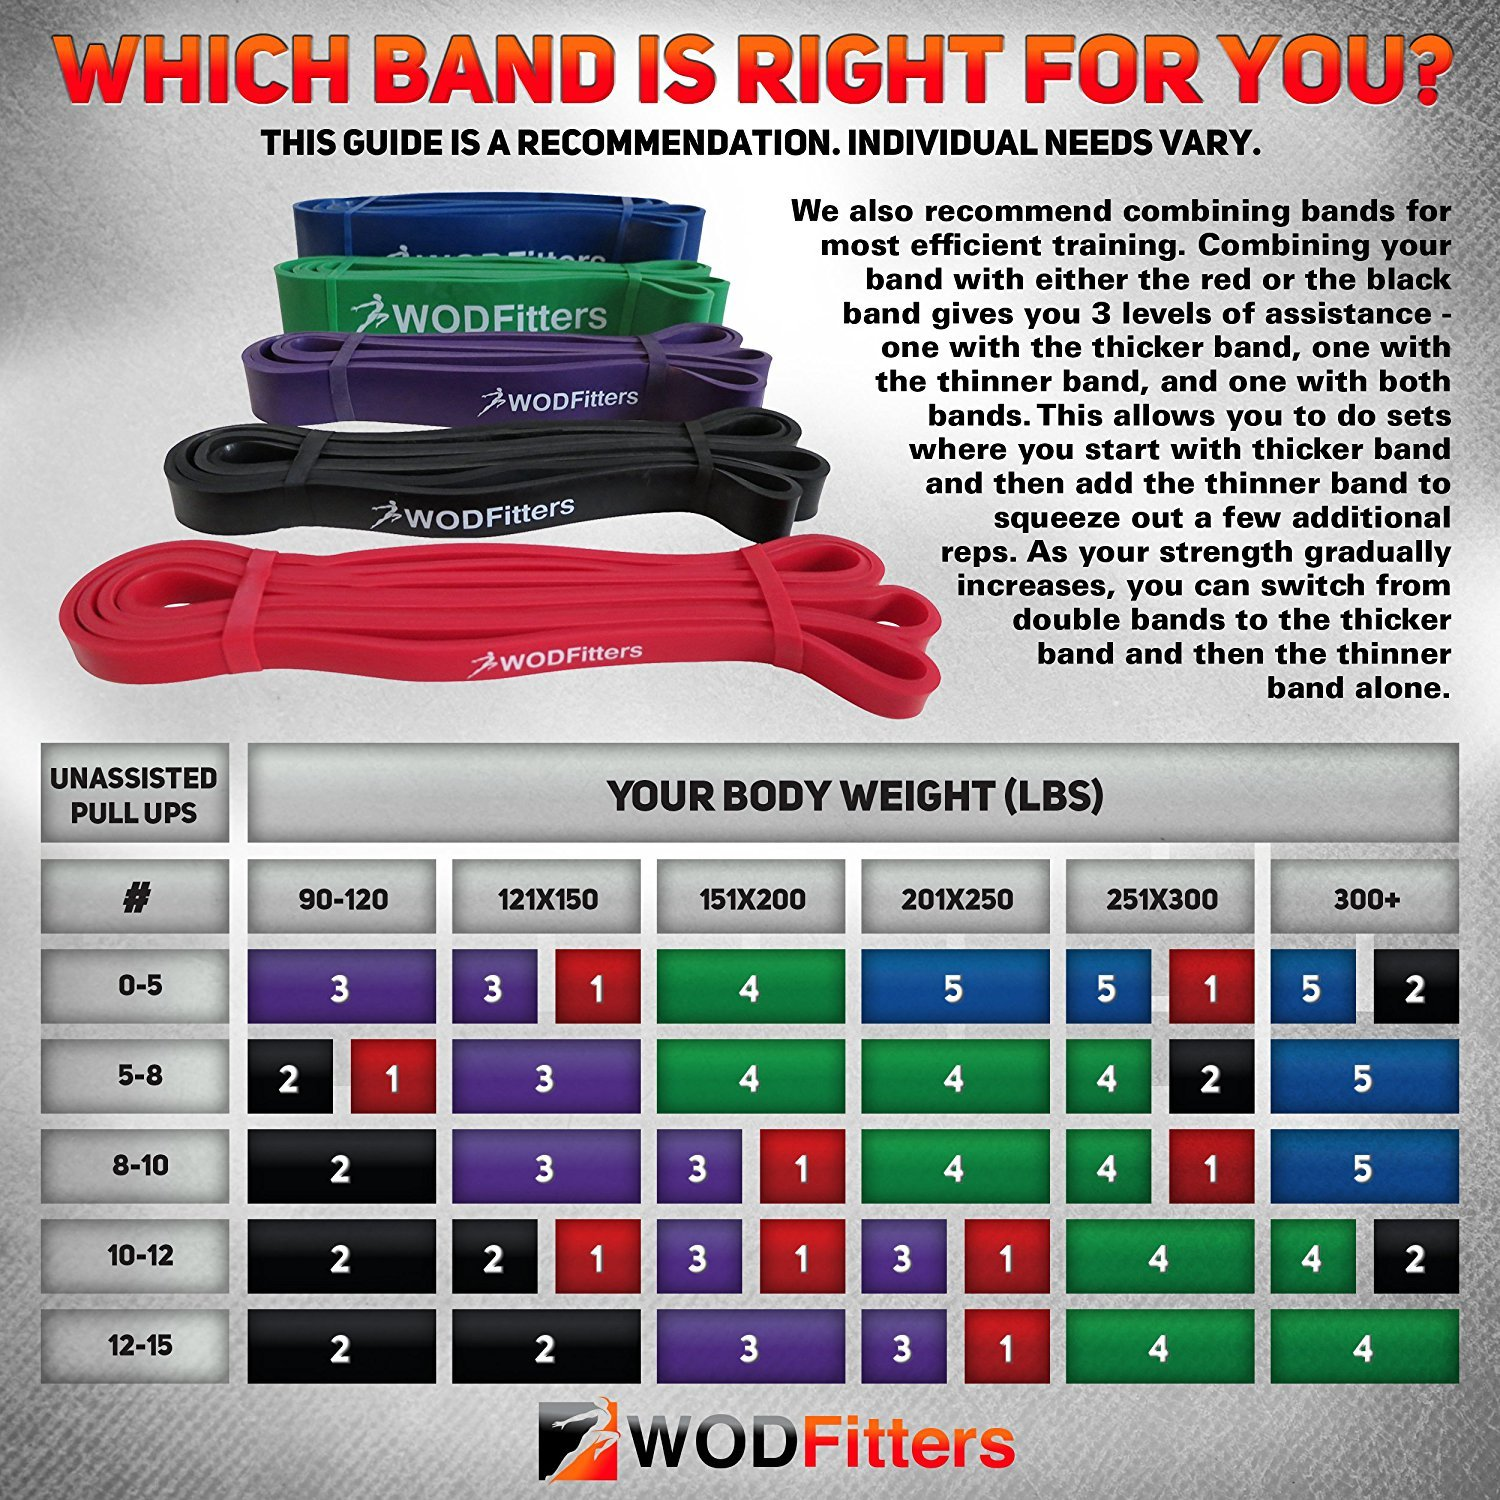 WODFitters Black Band Resistance Bands Black - Single Band Assisted Pull-up Resistance Band Cross Fitness Training Power-Lifting - by WODFitters (Image #3)